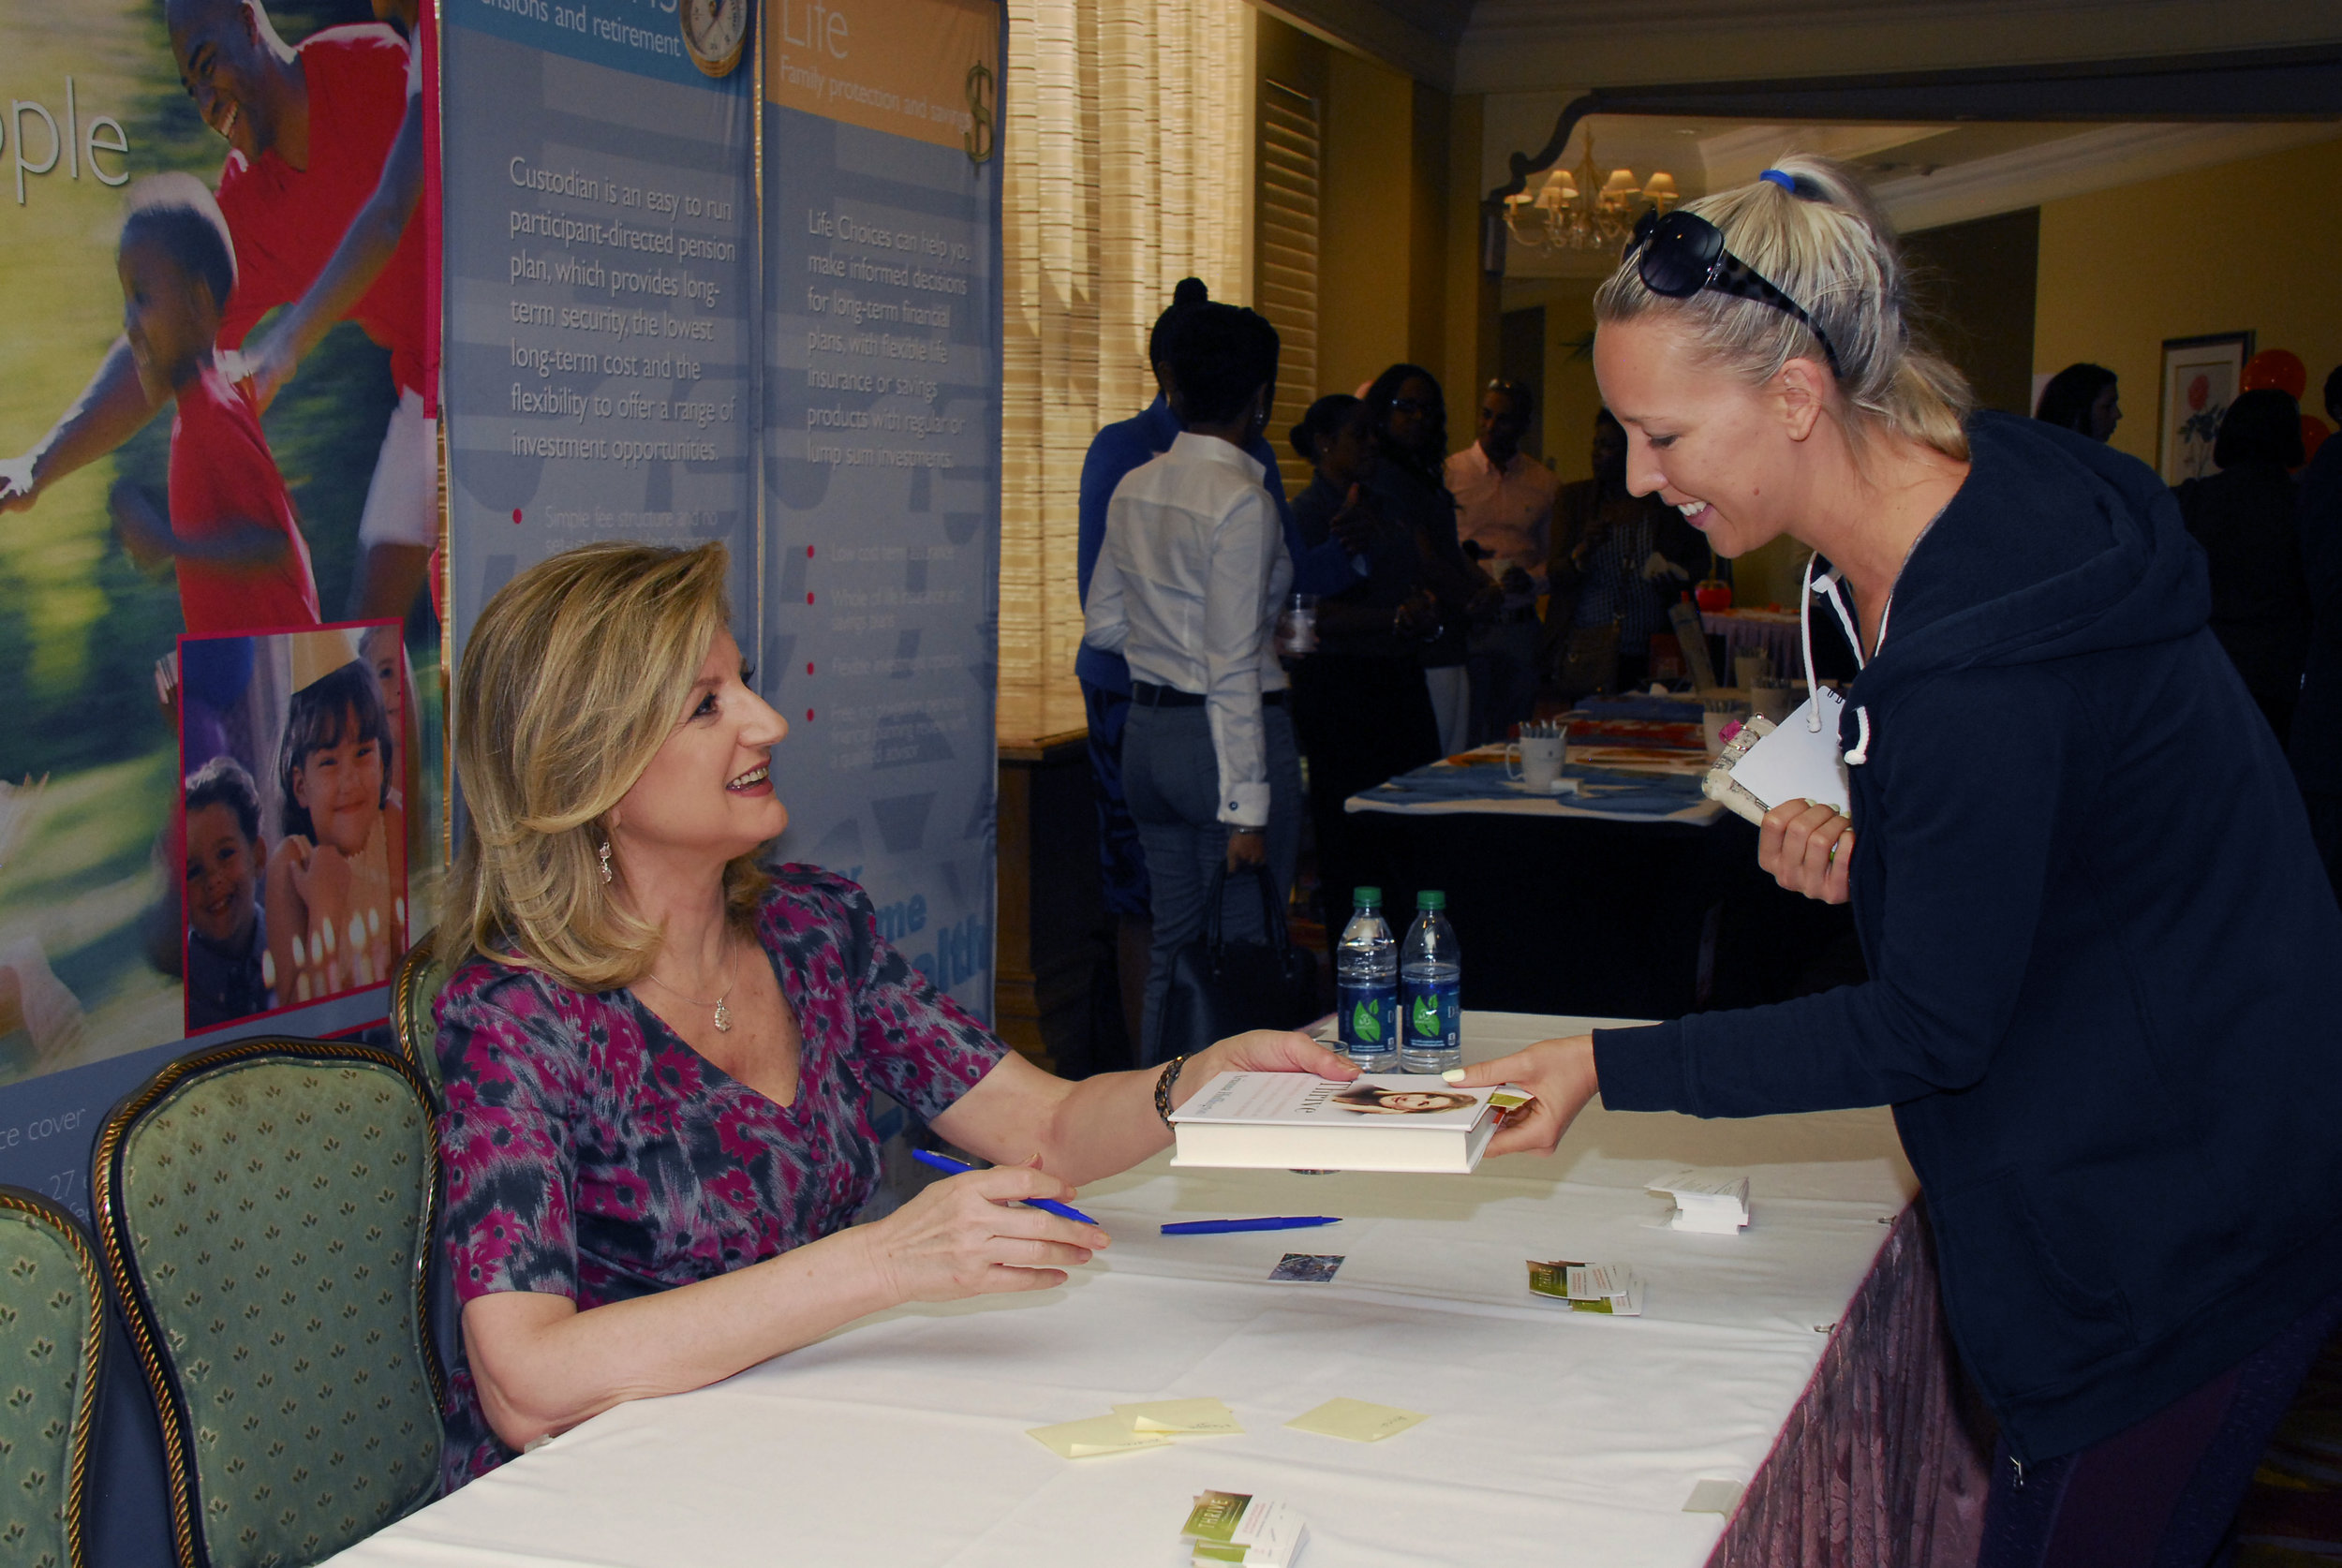 Ms. Huffington signed books for attendees after Saturday's public talk.